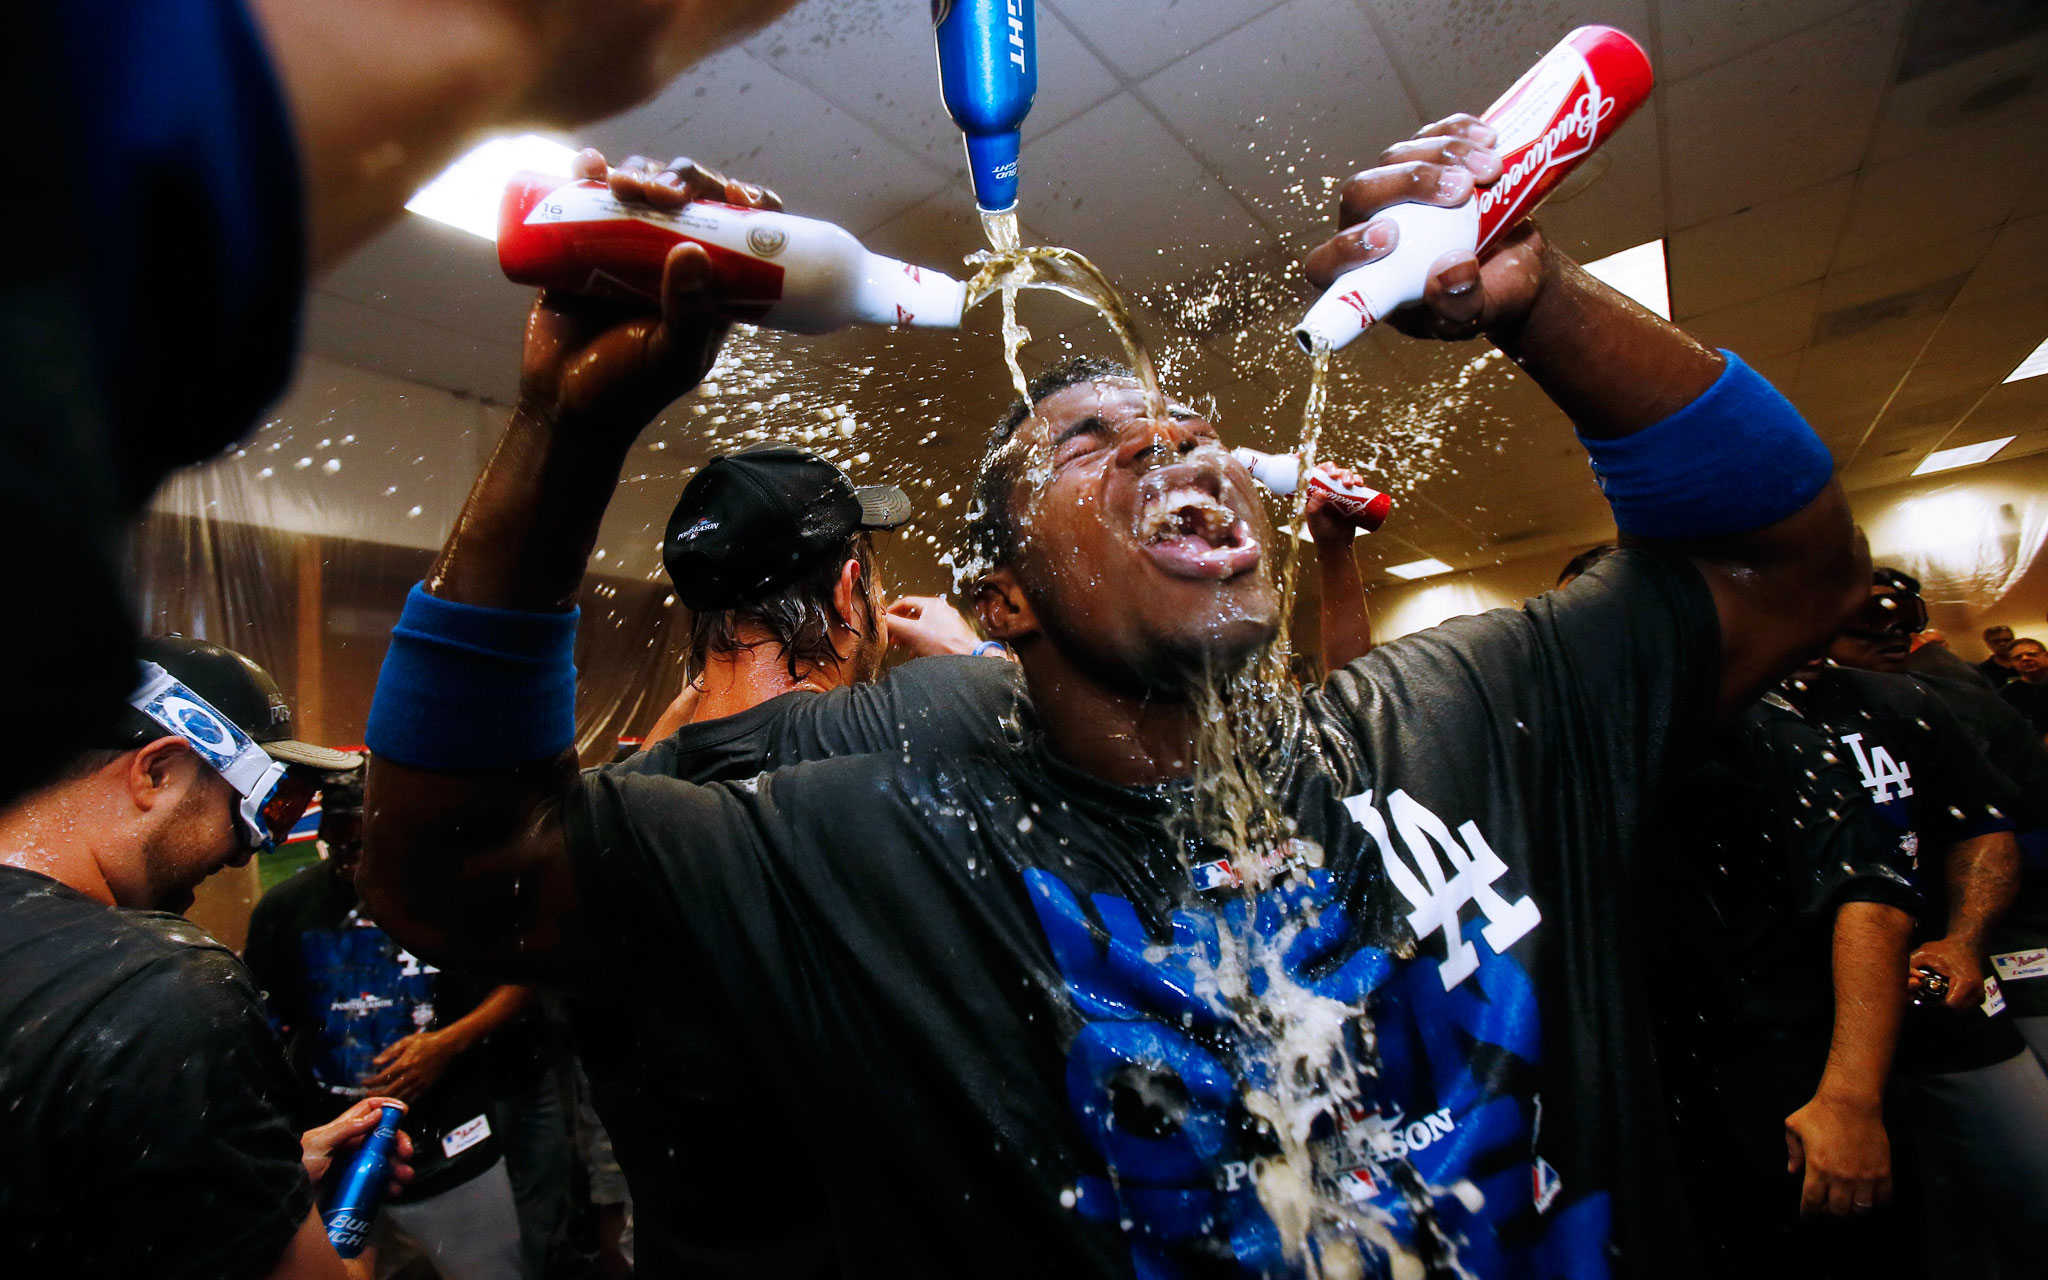 Puig Party